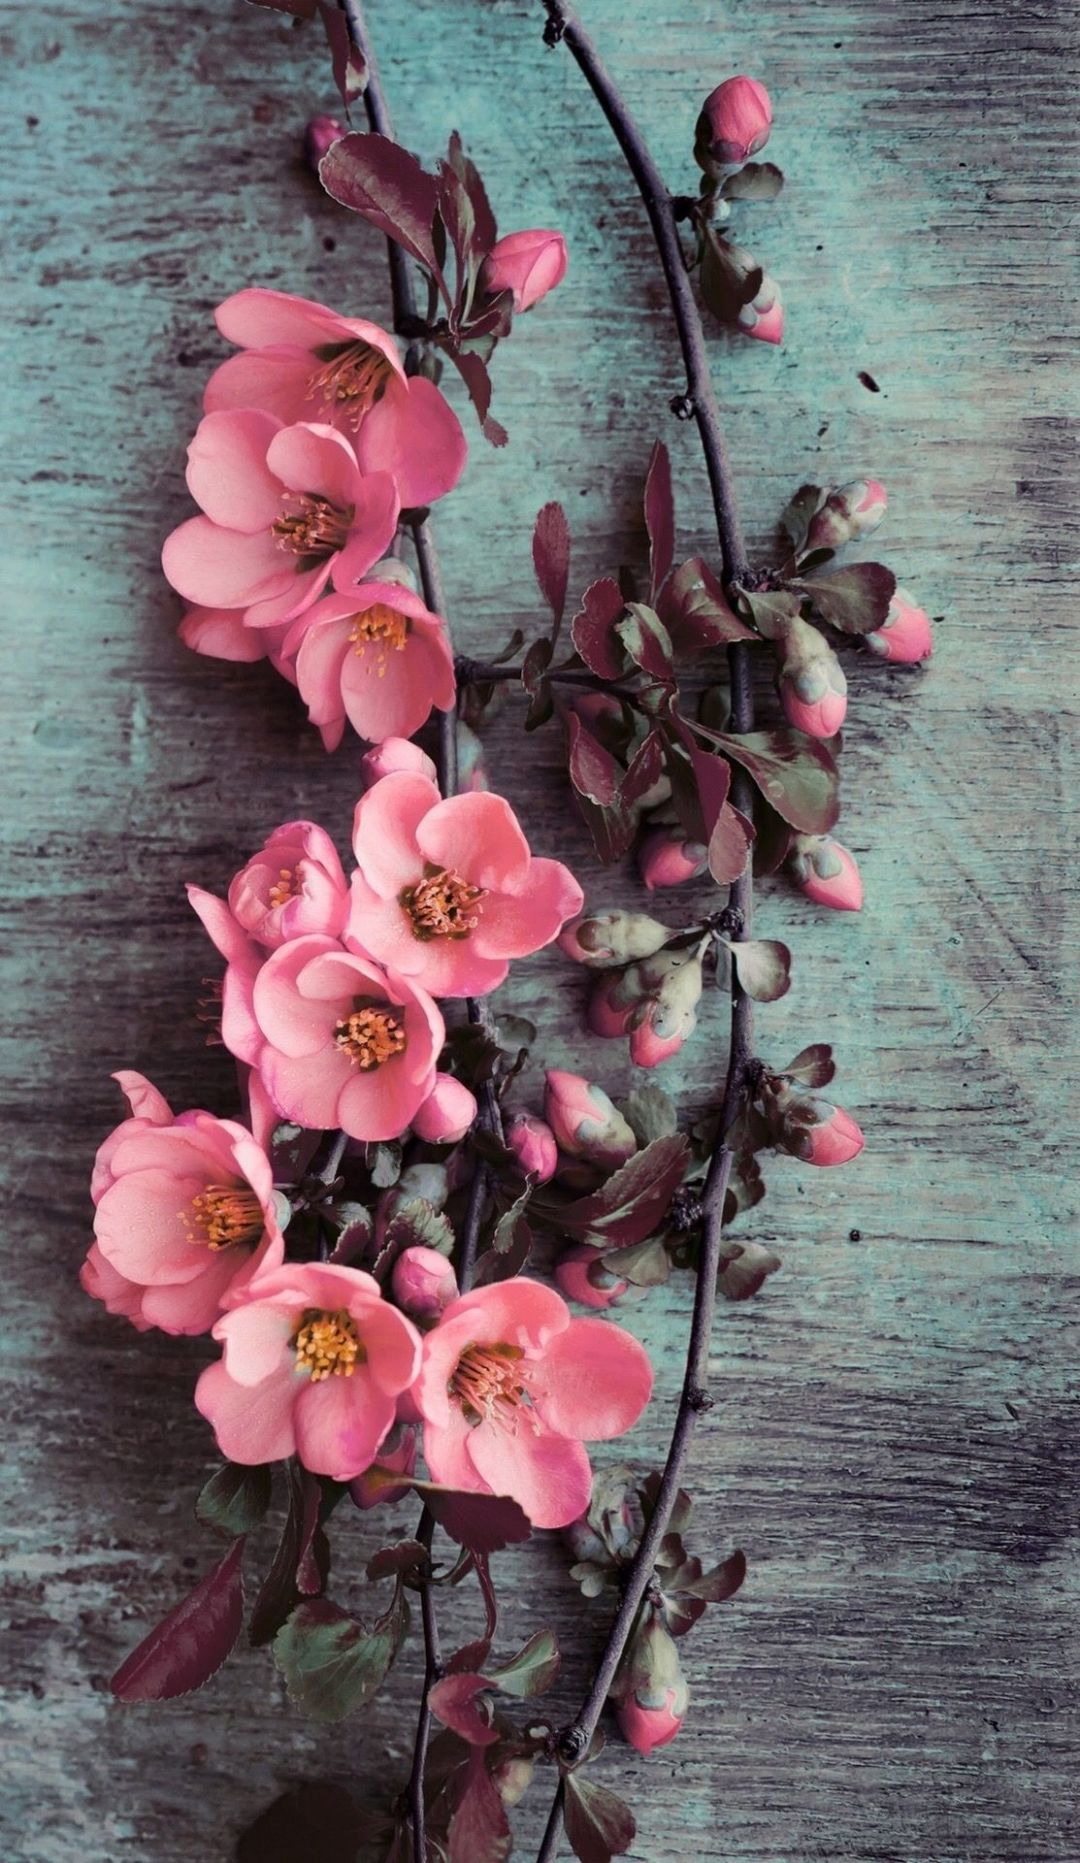 65 Pink Flower Android Iphone Desktop Hd Backgrounds Wallpapers 1080p 4k 1113x1920 2020